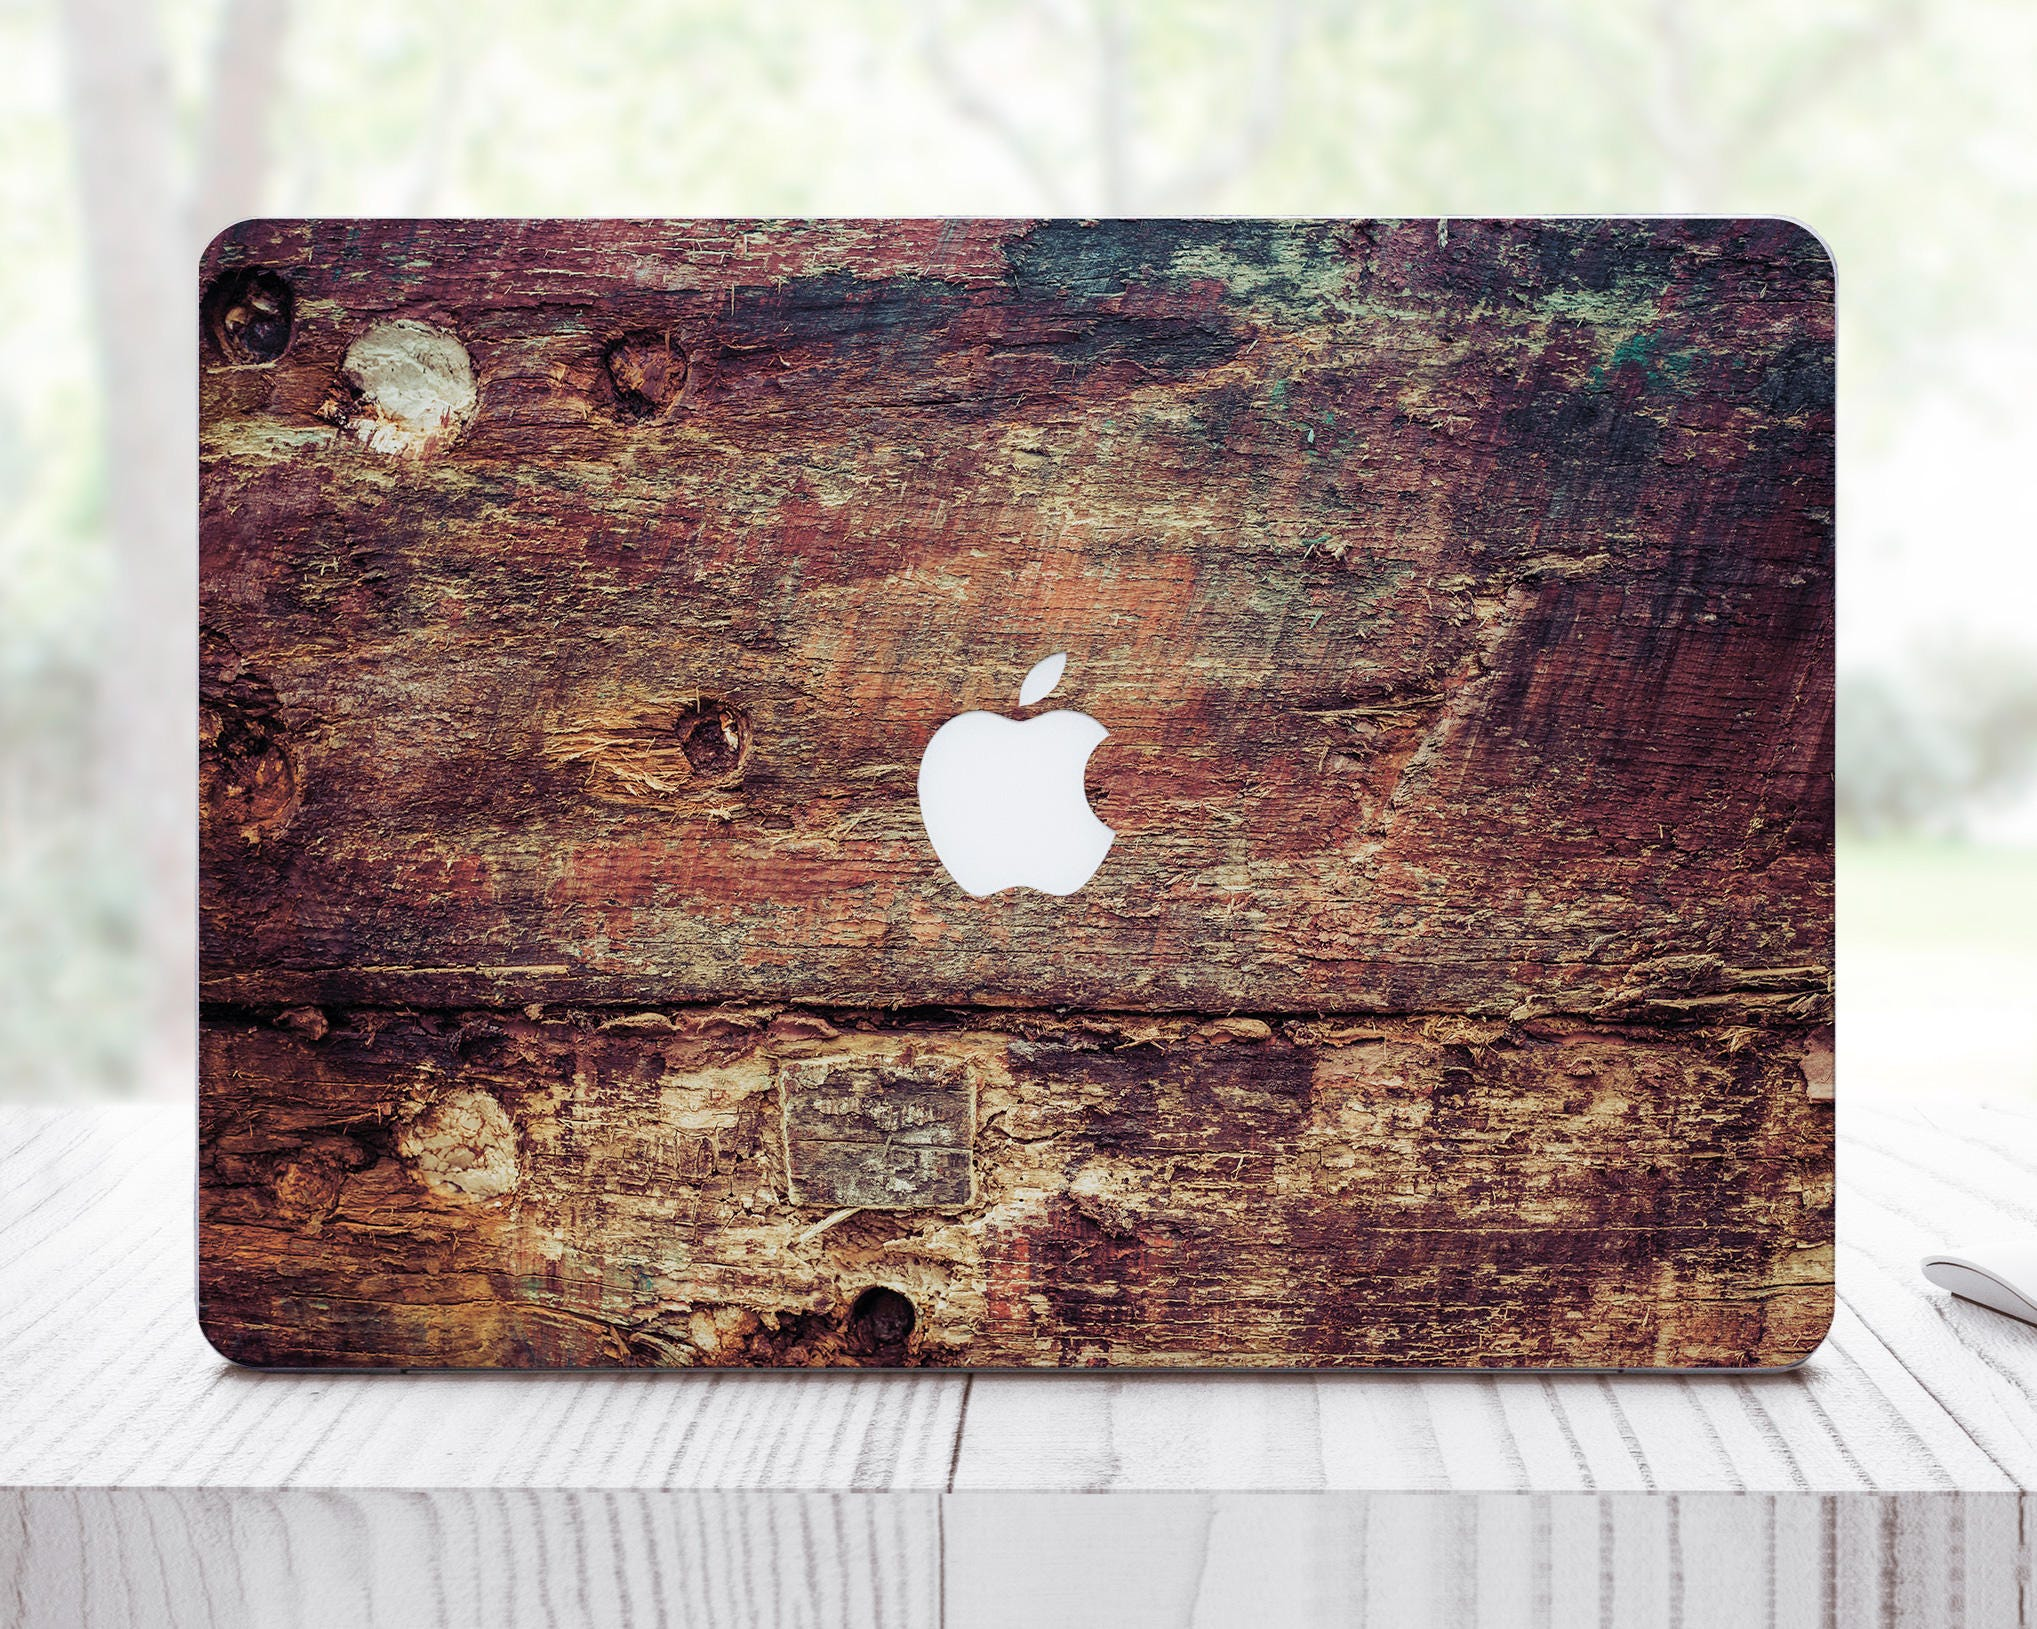 Wooden Decal MacBook Pro Retina Sticker MacBook Pro Retina 15 Sticker MacBook Air 13 Inch Mac Book Cover Laptop Cover Mac Decal ES0004